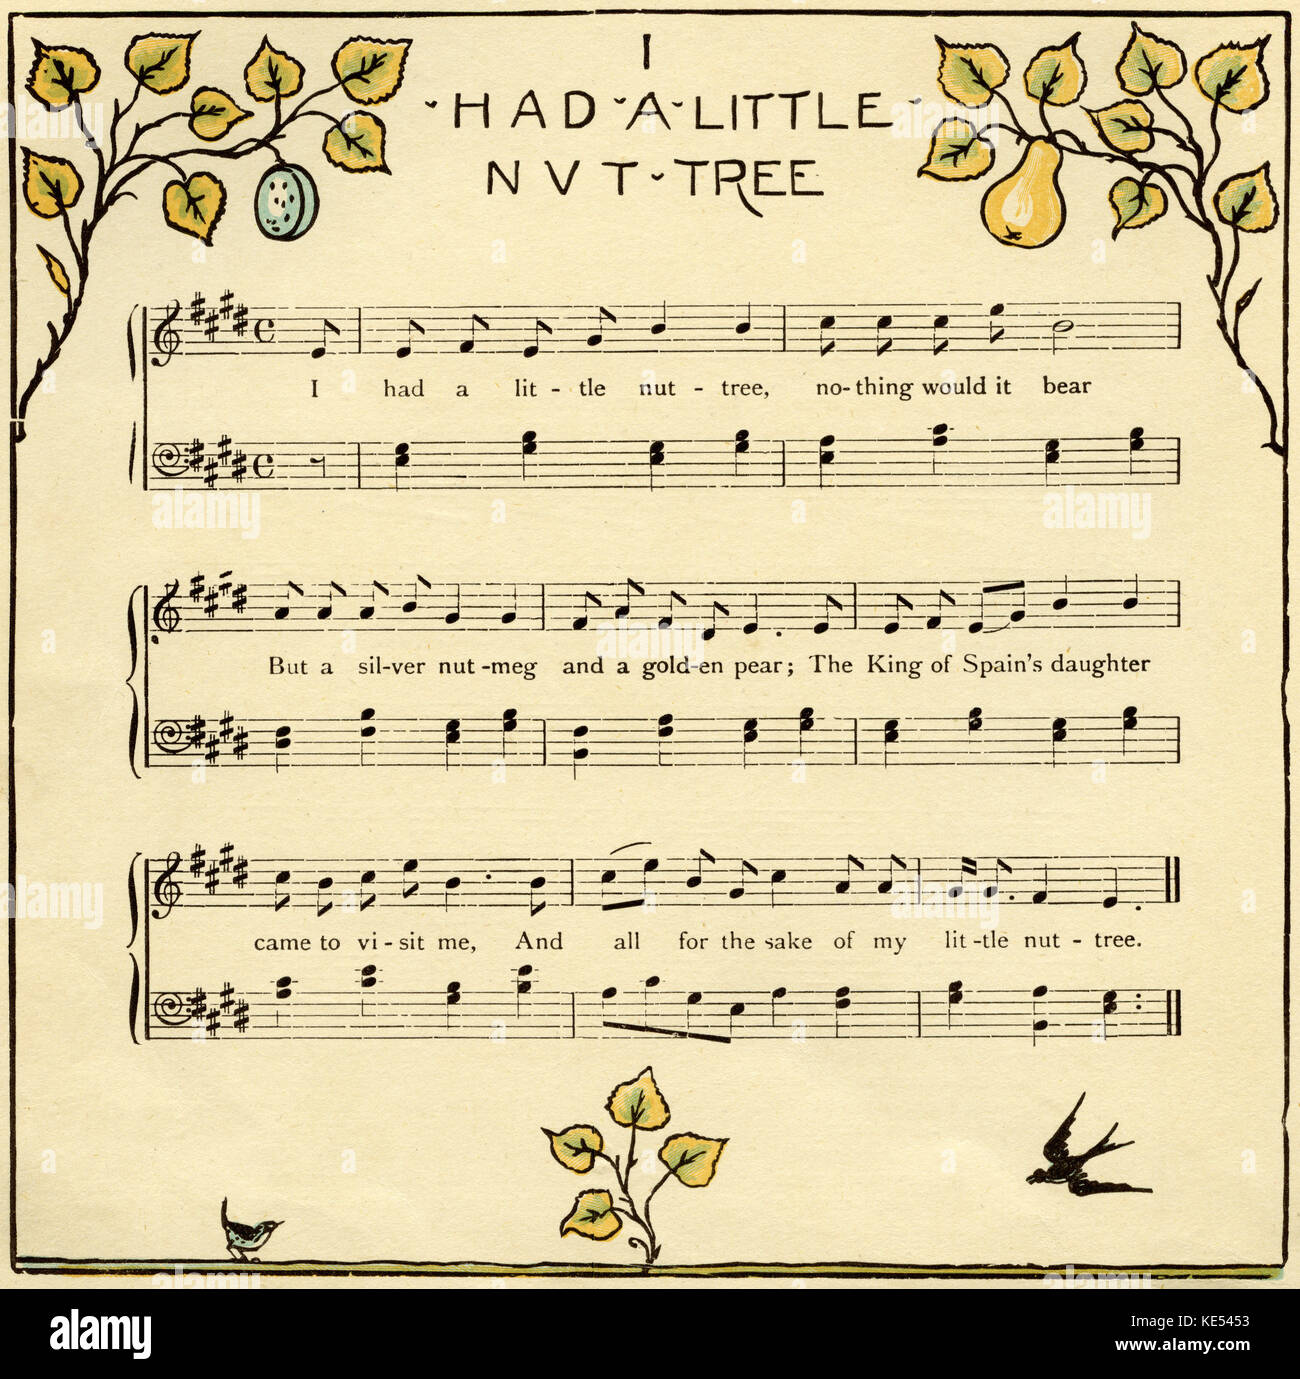 I had a little nut tree, nursery rhyme score, illustration (1877) by Walter Crane. English artist of Arts and Crafts - Stock Image